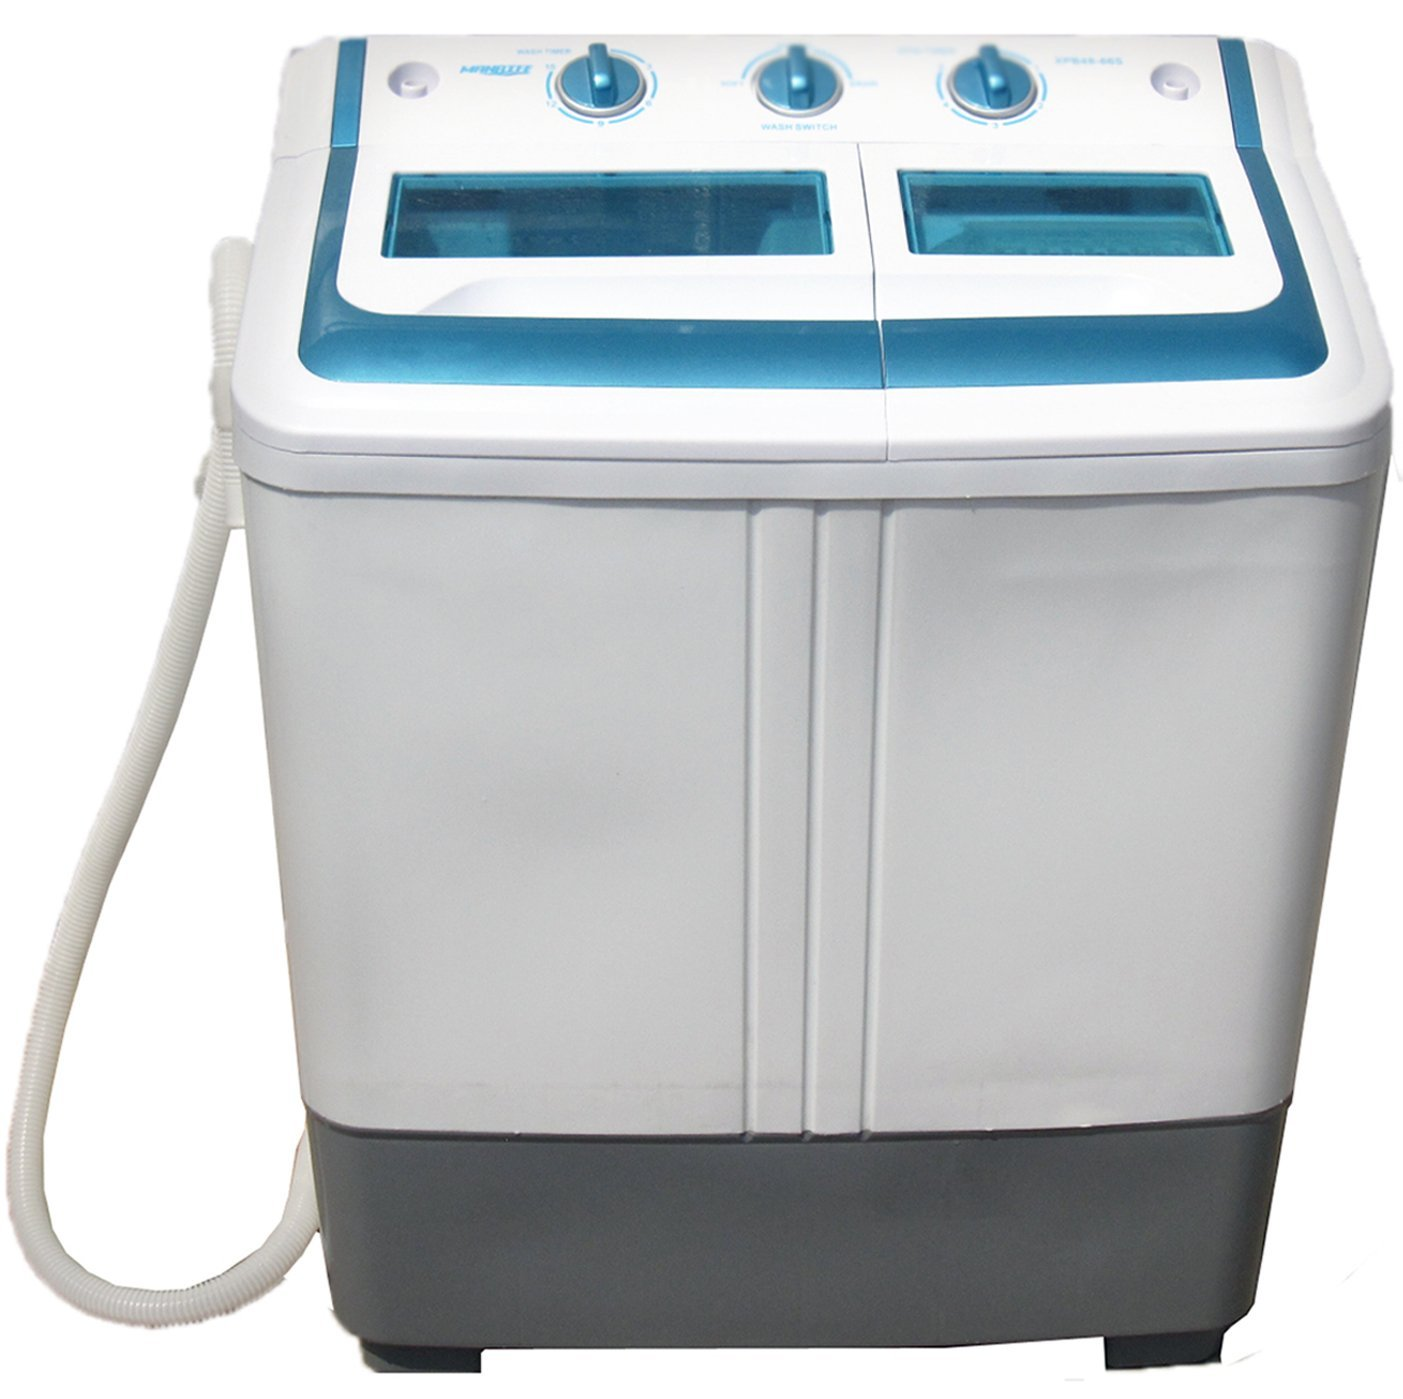 Washers reviews mini washing machine 11 lbs capacity for Portable washer and dryer